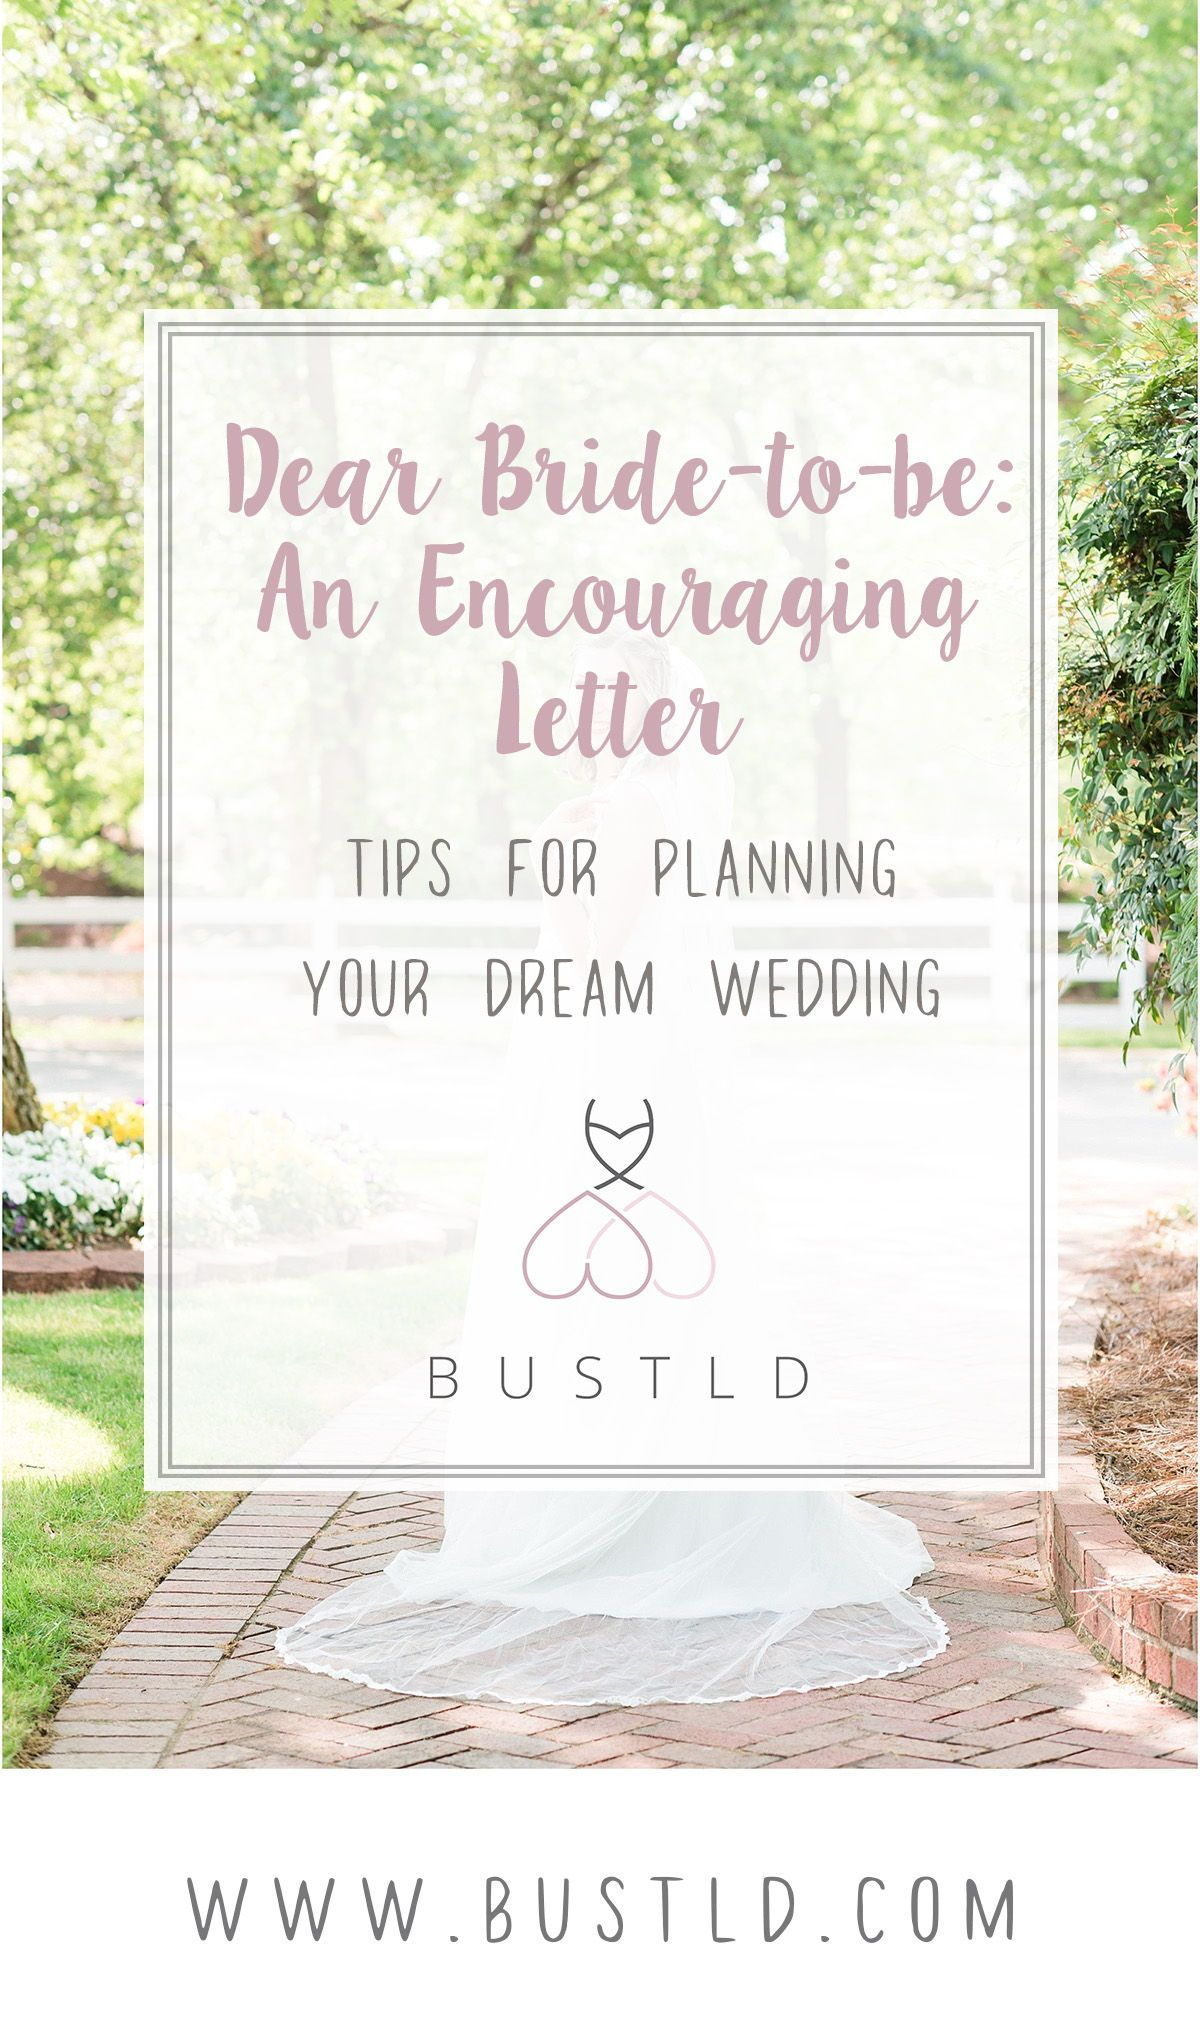 Dear Bride To Be An Encouraging Letter While Planning Your Wedding